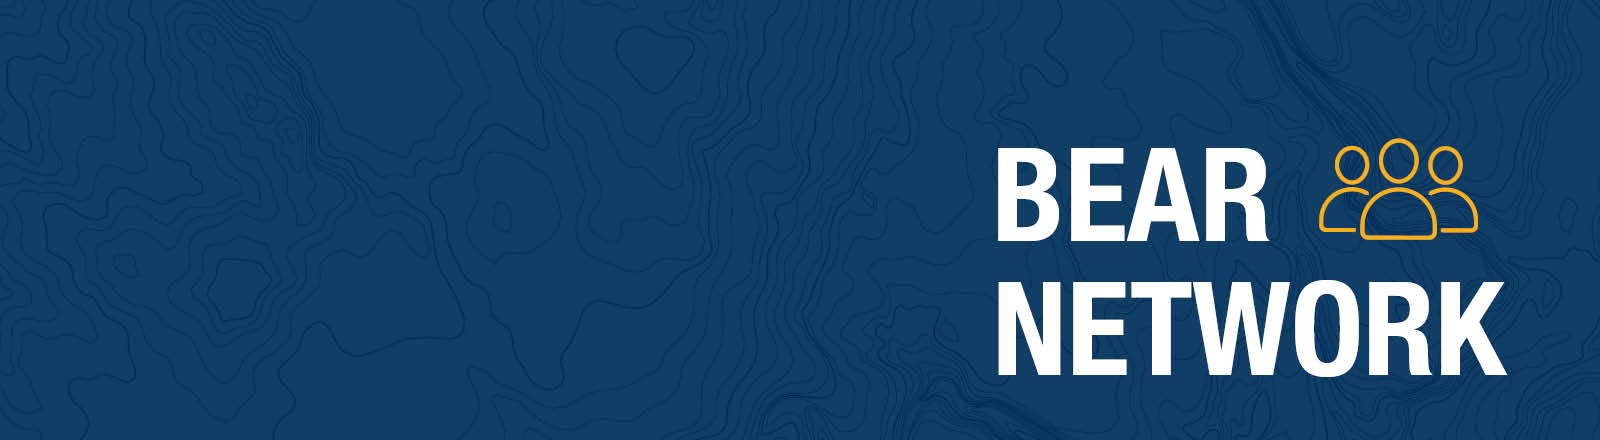 Bear Network Header Image